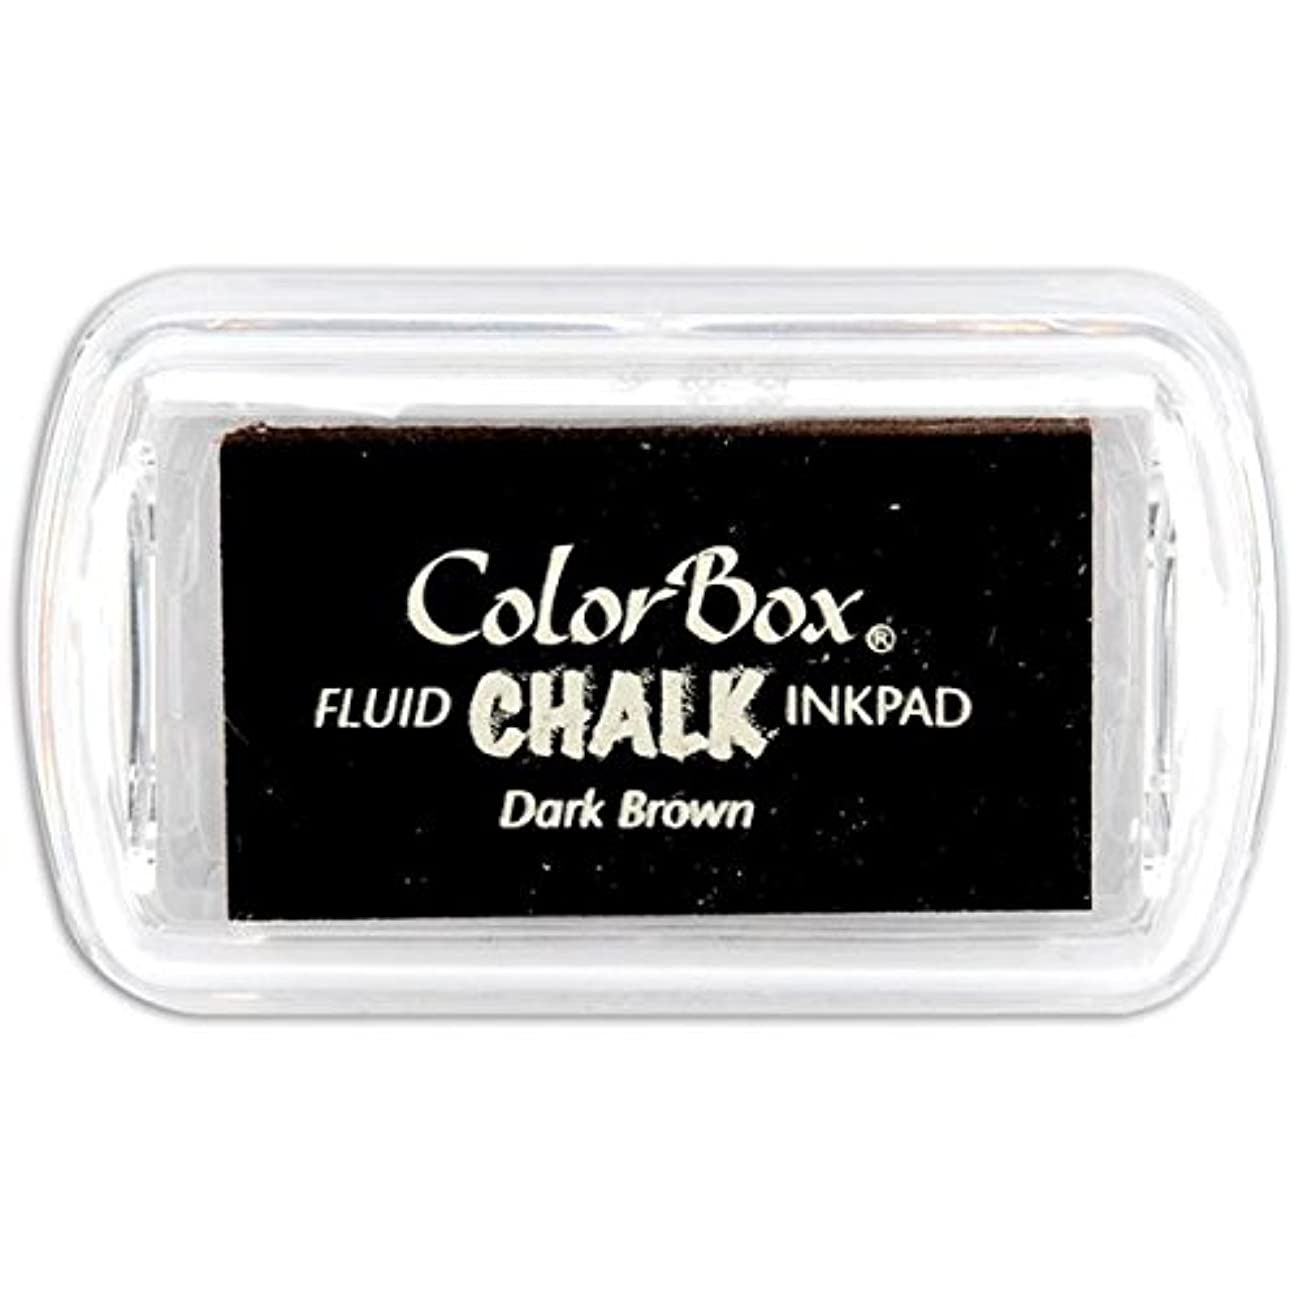 ColorBox Chalk Mini Ink Pad, Dark Brown